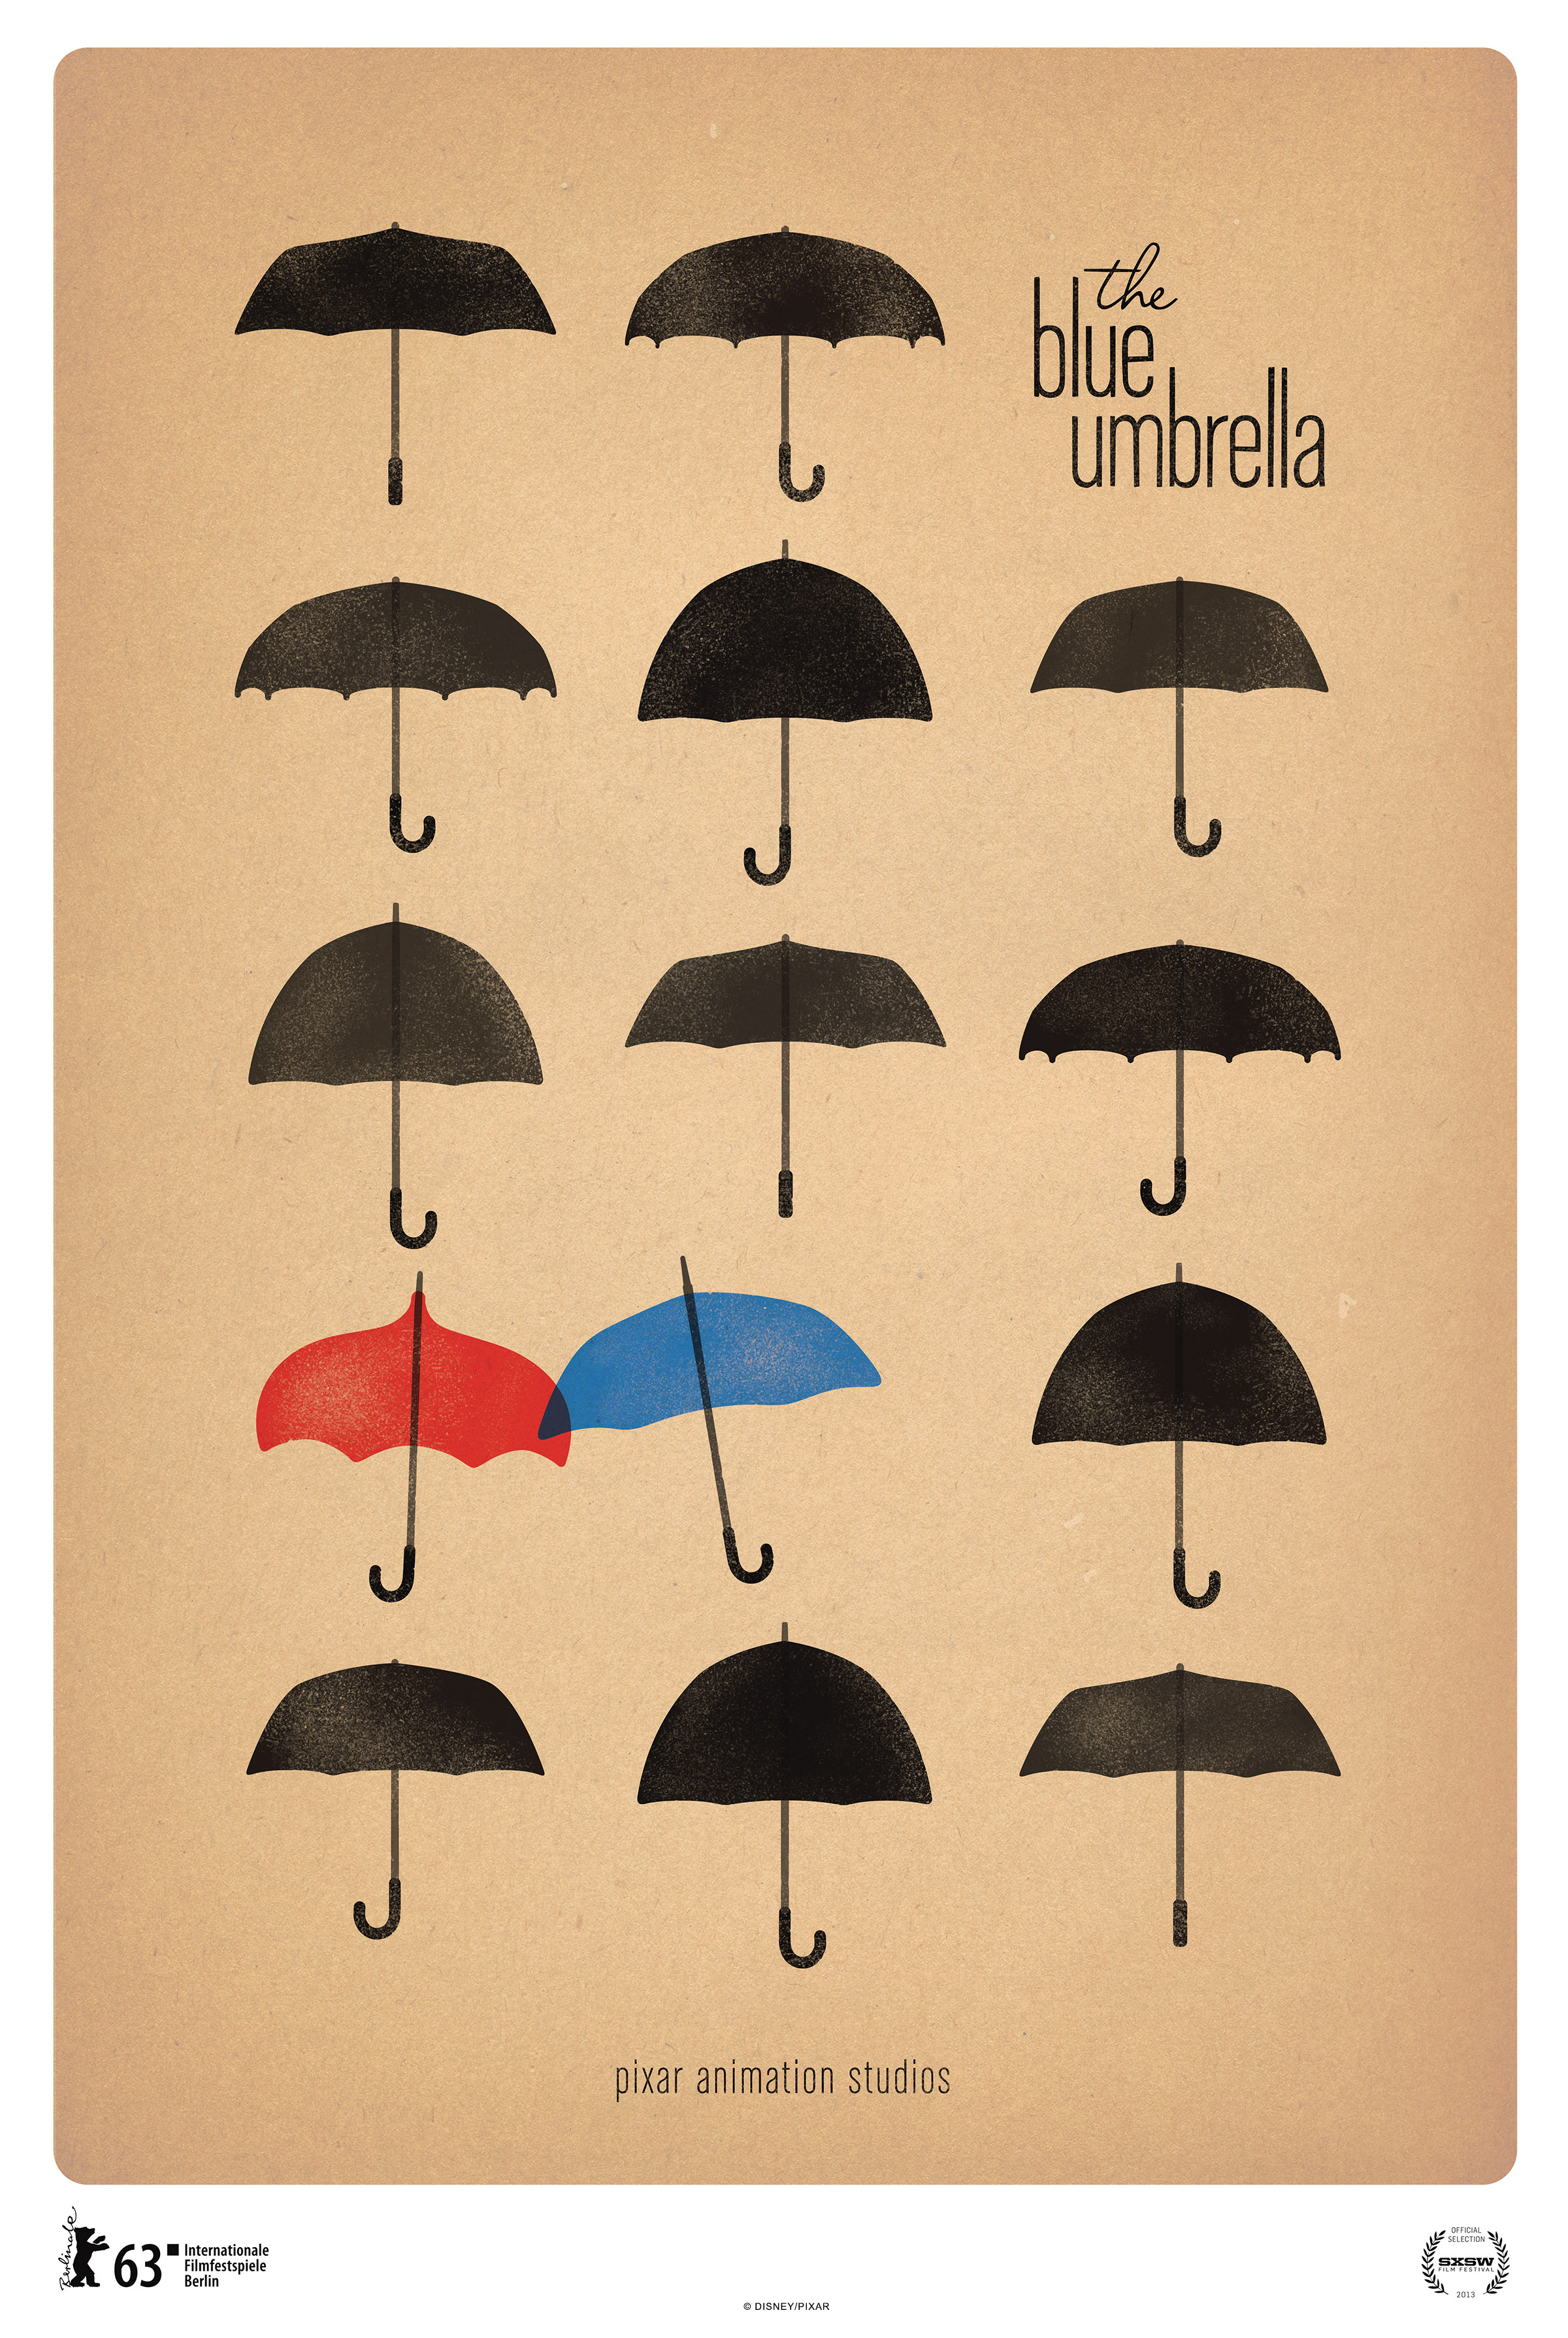 New Poster For Disney Pixar Animated Short The Blue Umbrella Released New Poster For Disney Pixar Animated Short The Blue Umbrella Released